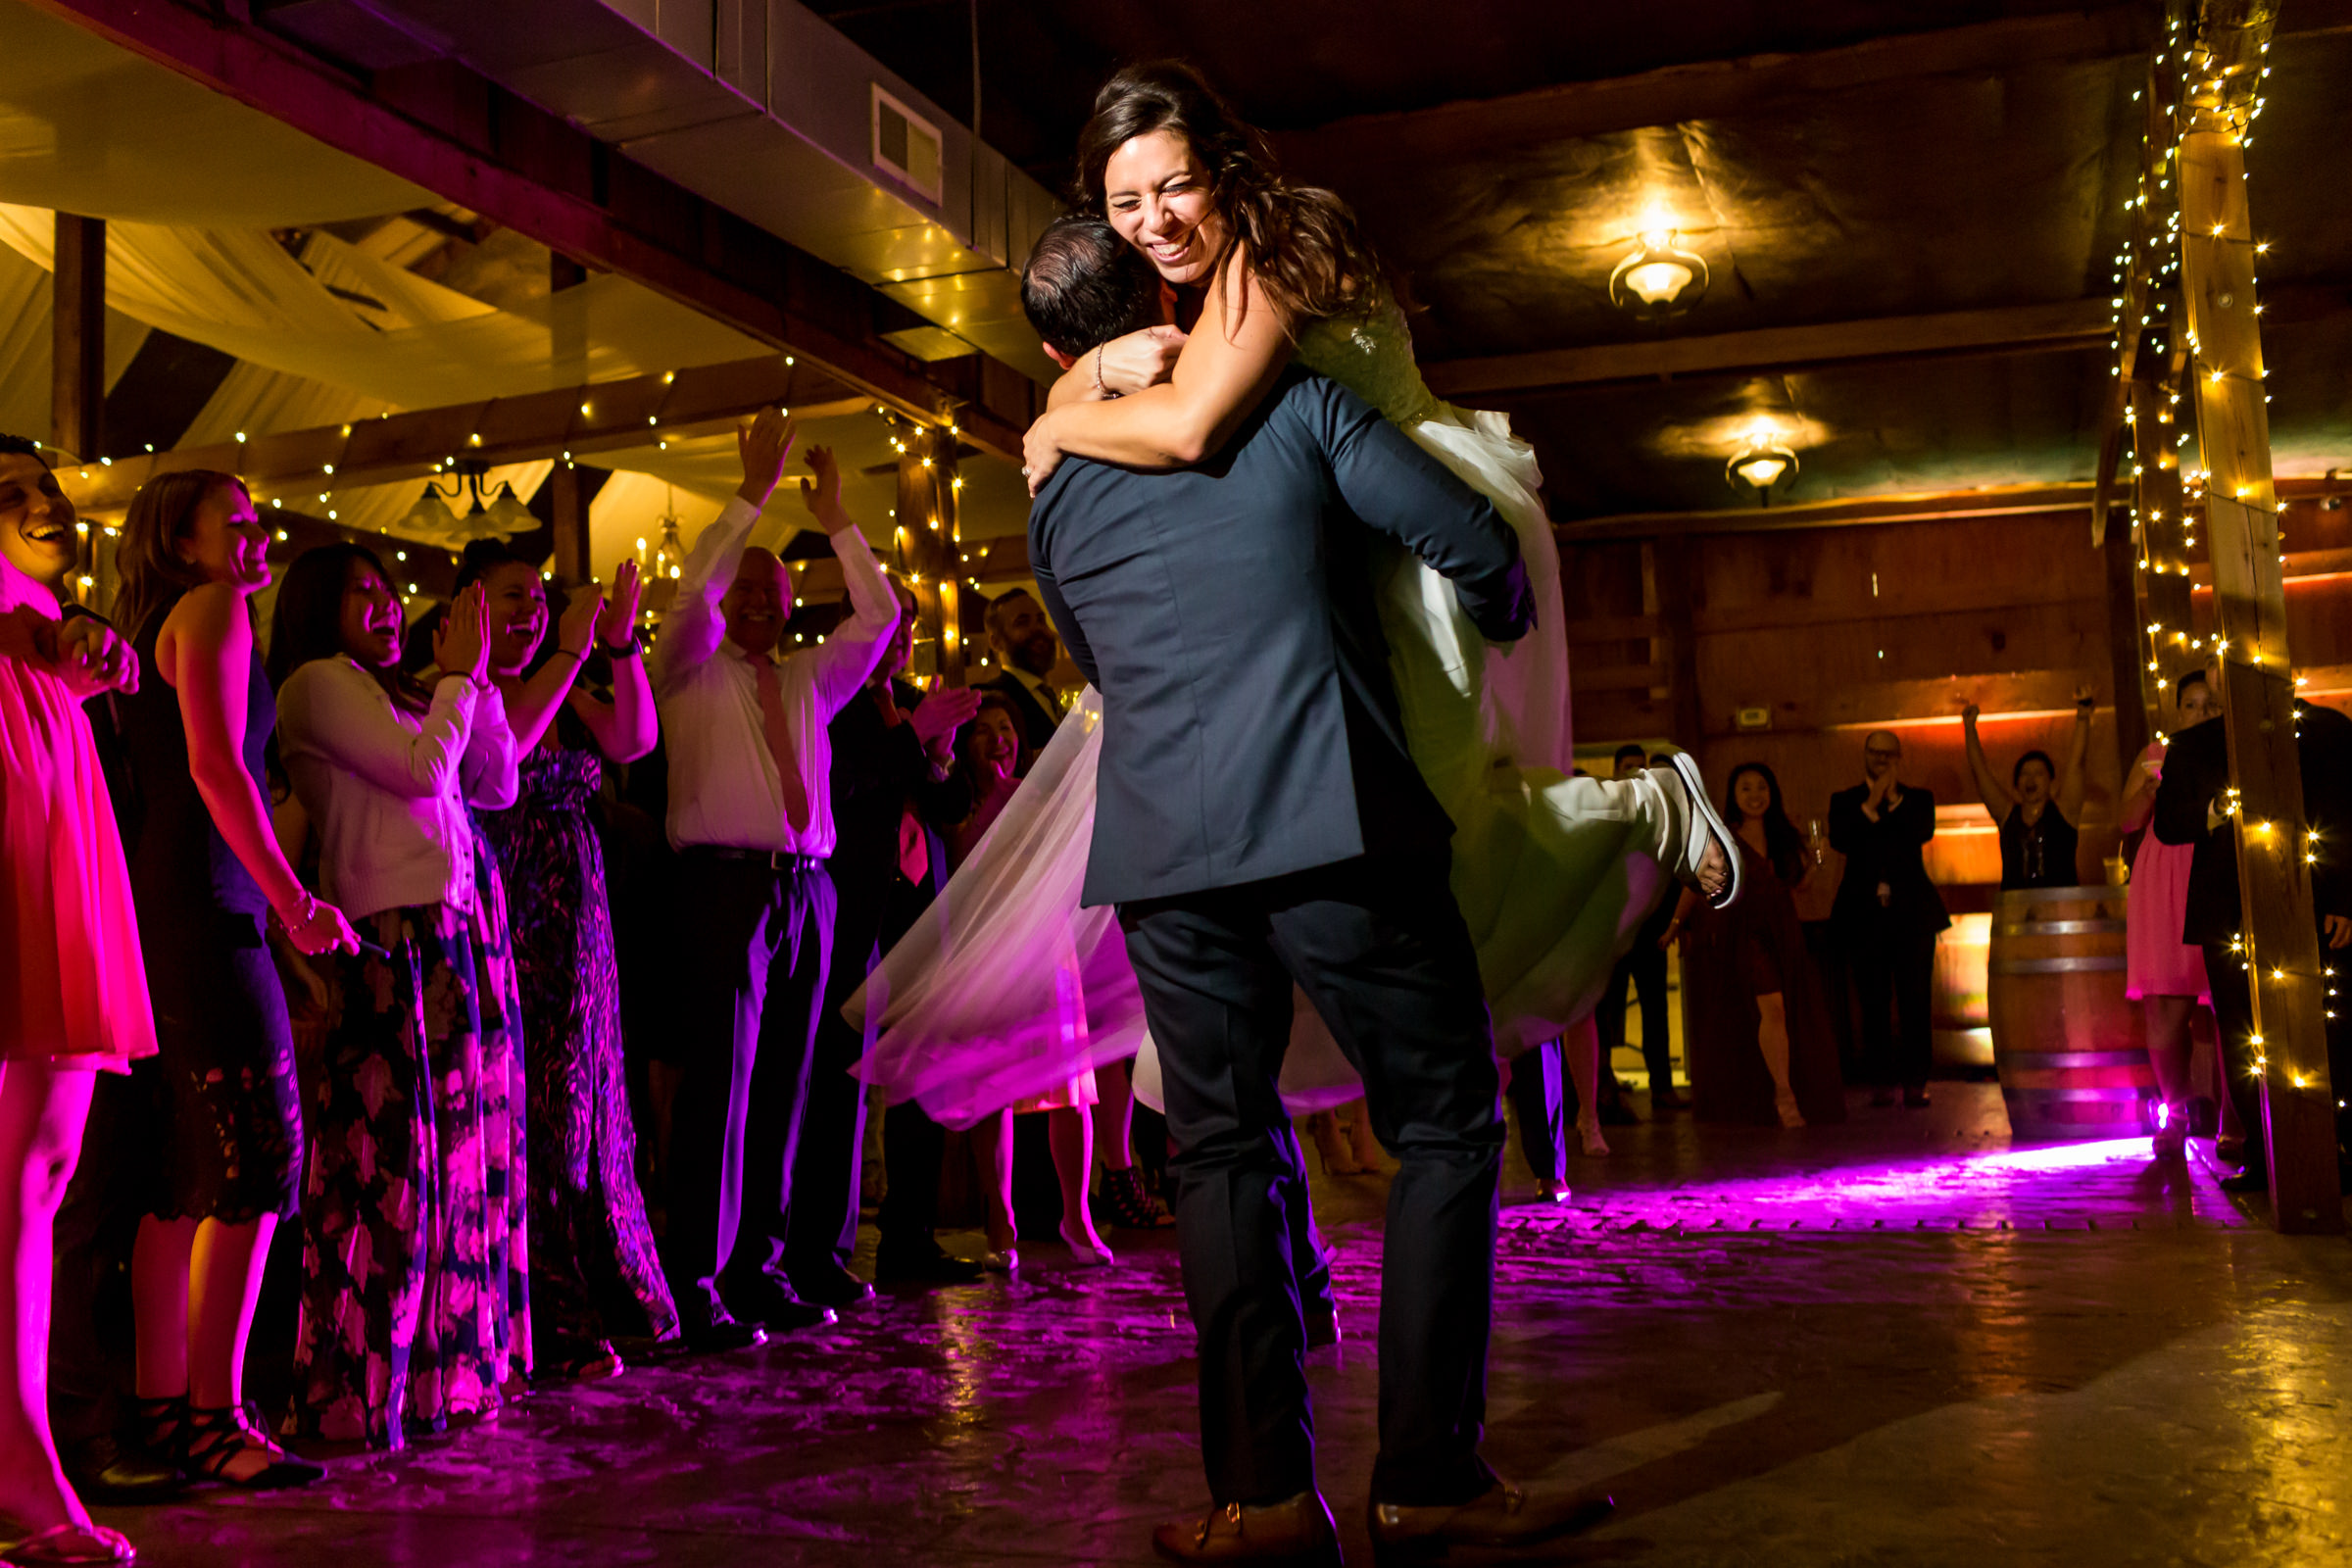 Groom lifts bride at dance - photo by Procopio Photography